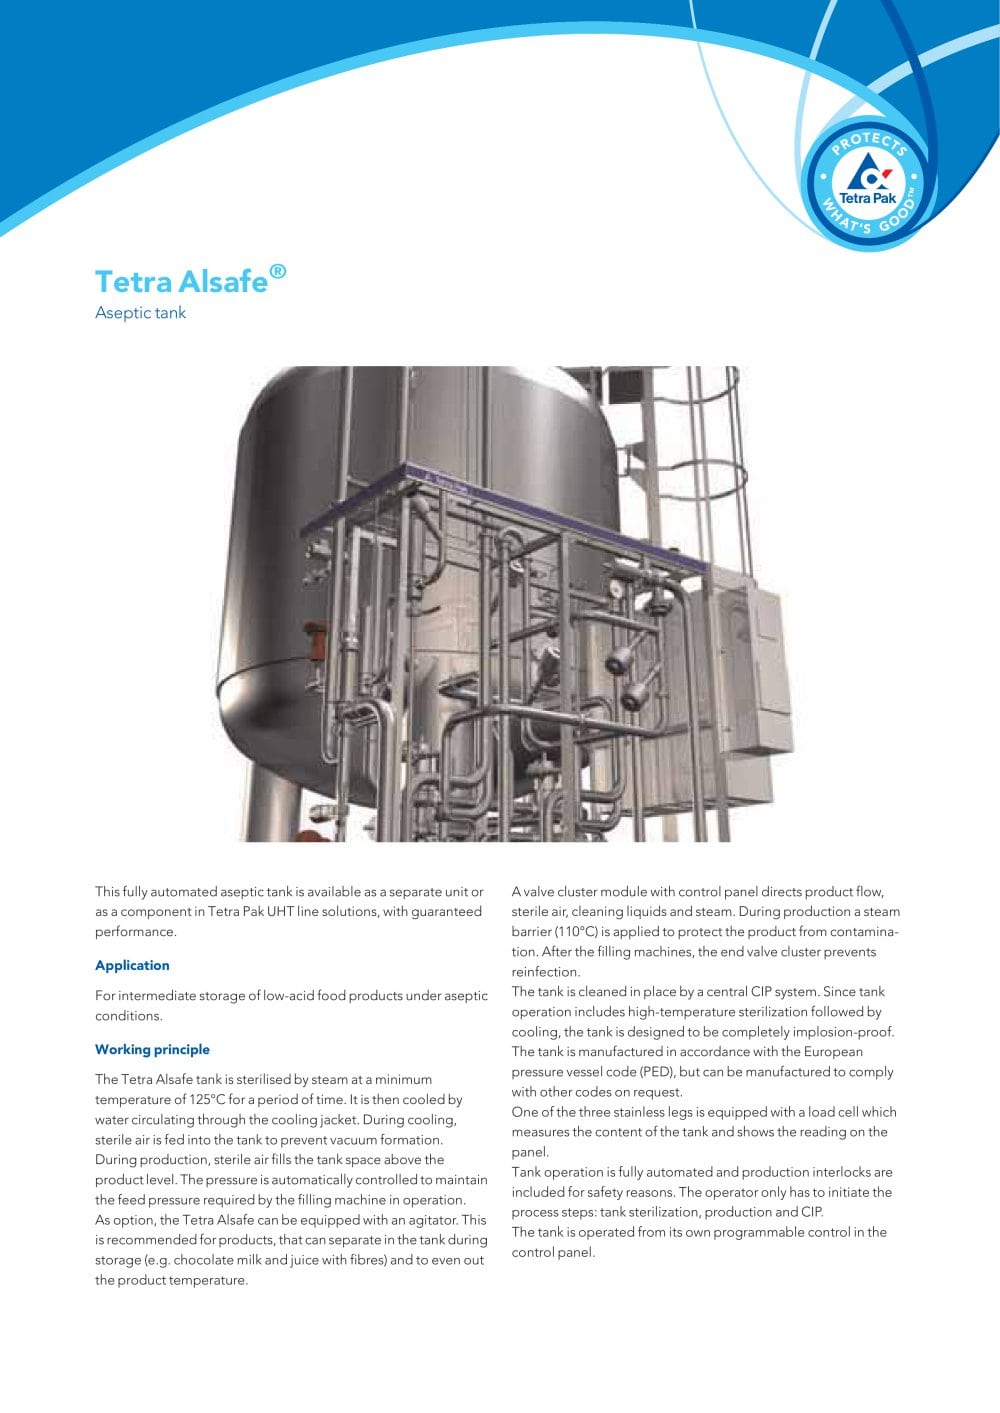 hight resolution of tetra alsafe aseptic tank 1 2 pages